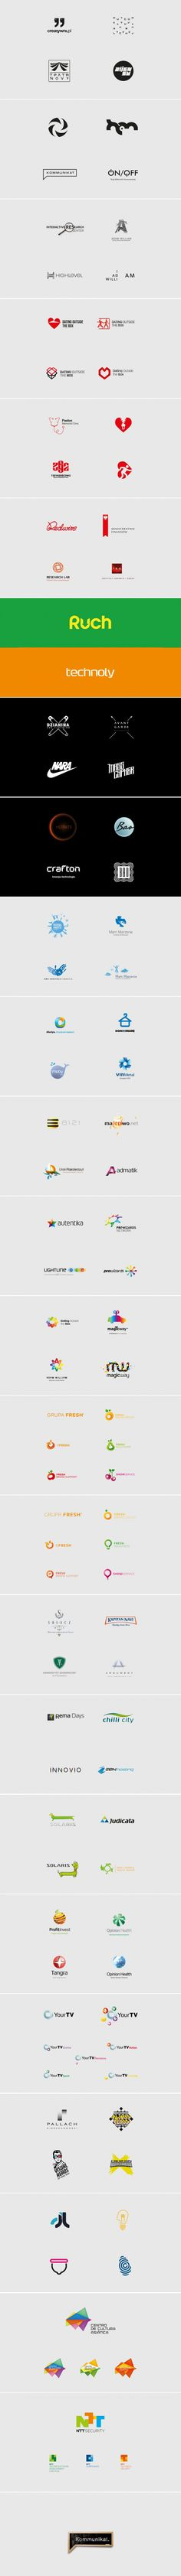 Logotheka contain concepts from 2006-2011. Selected logos designed by Kuba Enzowski. http://kommunikat.pl/portfolio/logotheka_vol1/